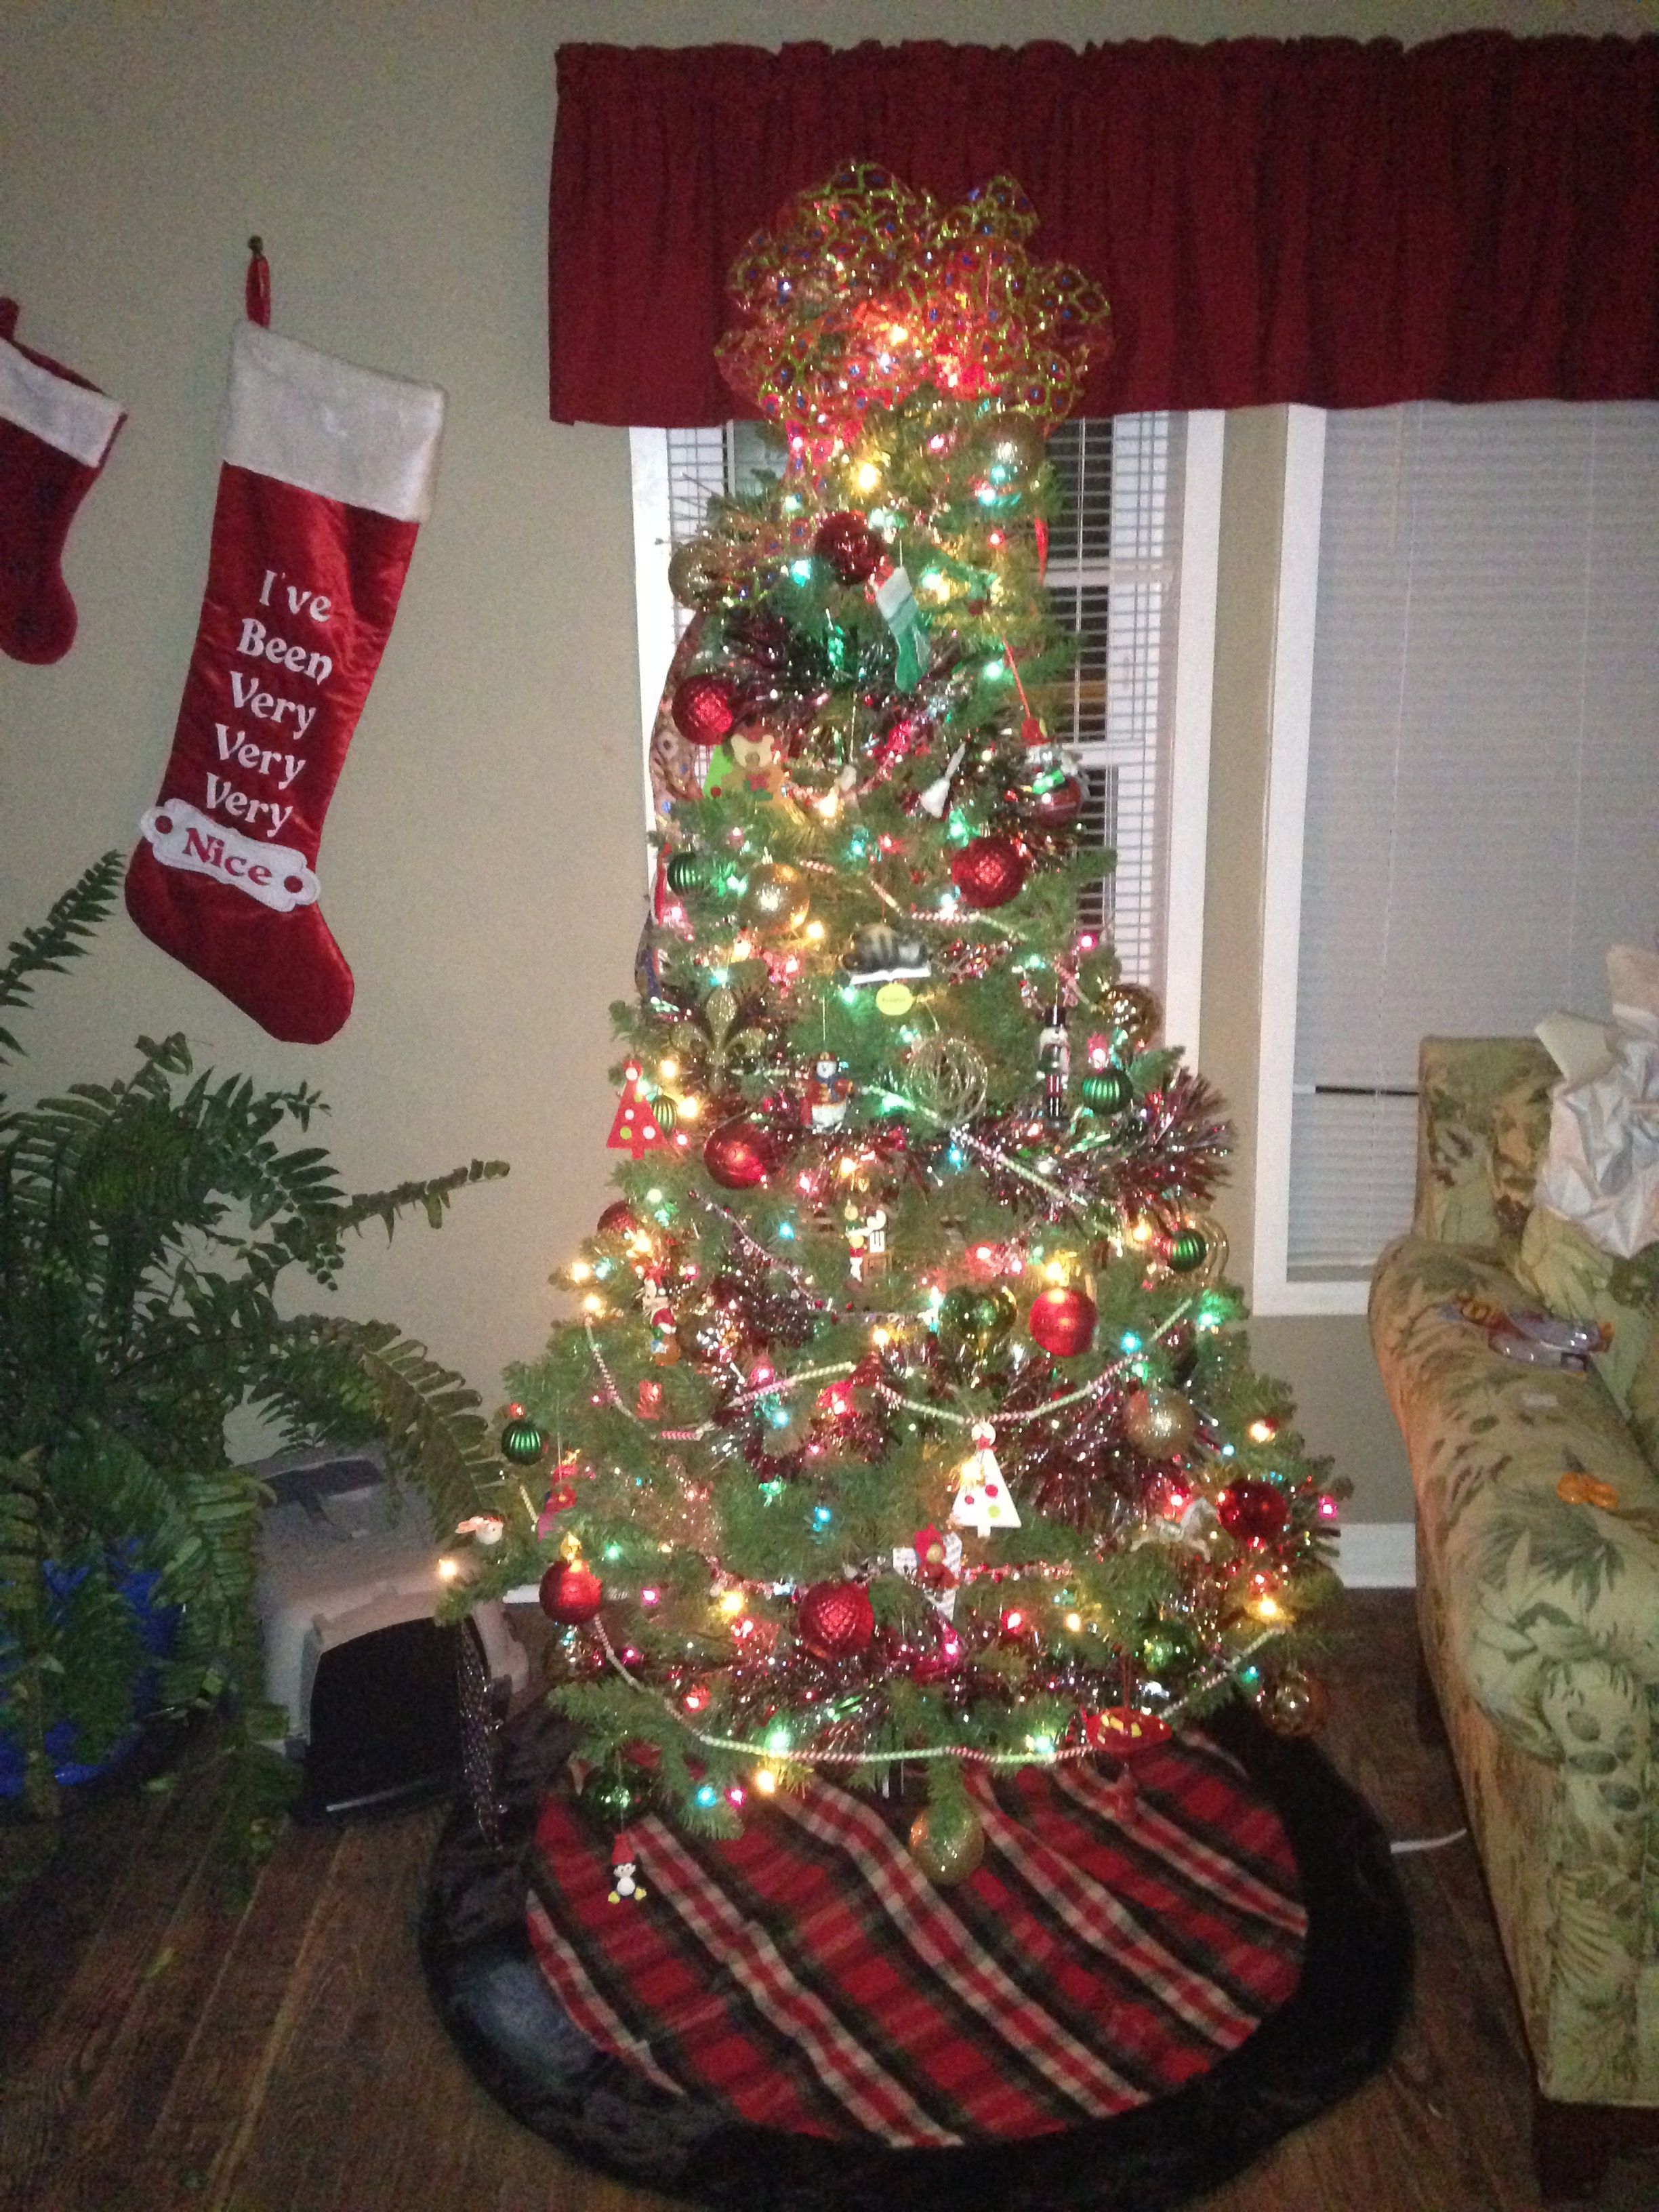 My husband and mines first tree together. It has all the ornaments that his Mom saved for him every year. Makes the most beautiful tree ever to me.